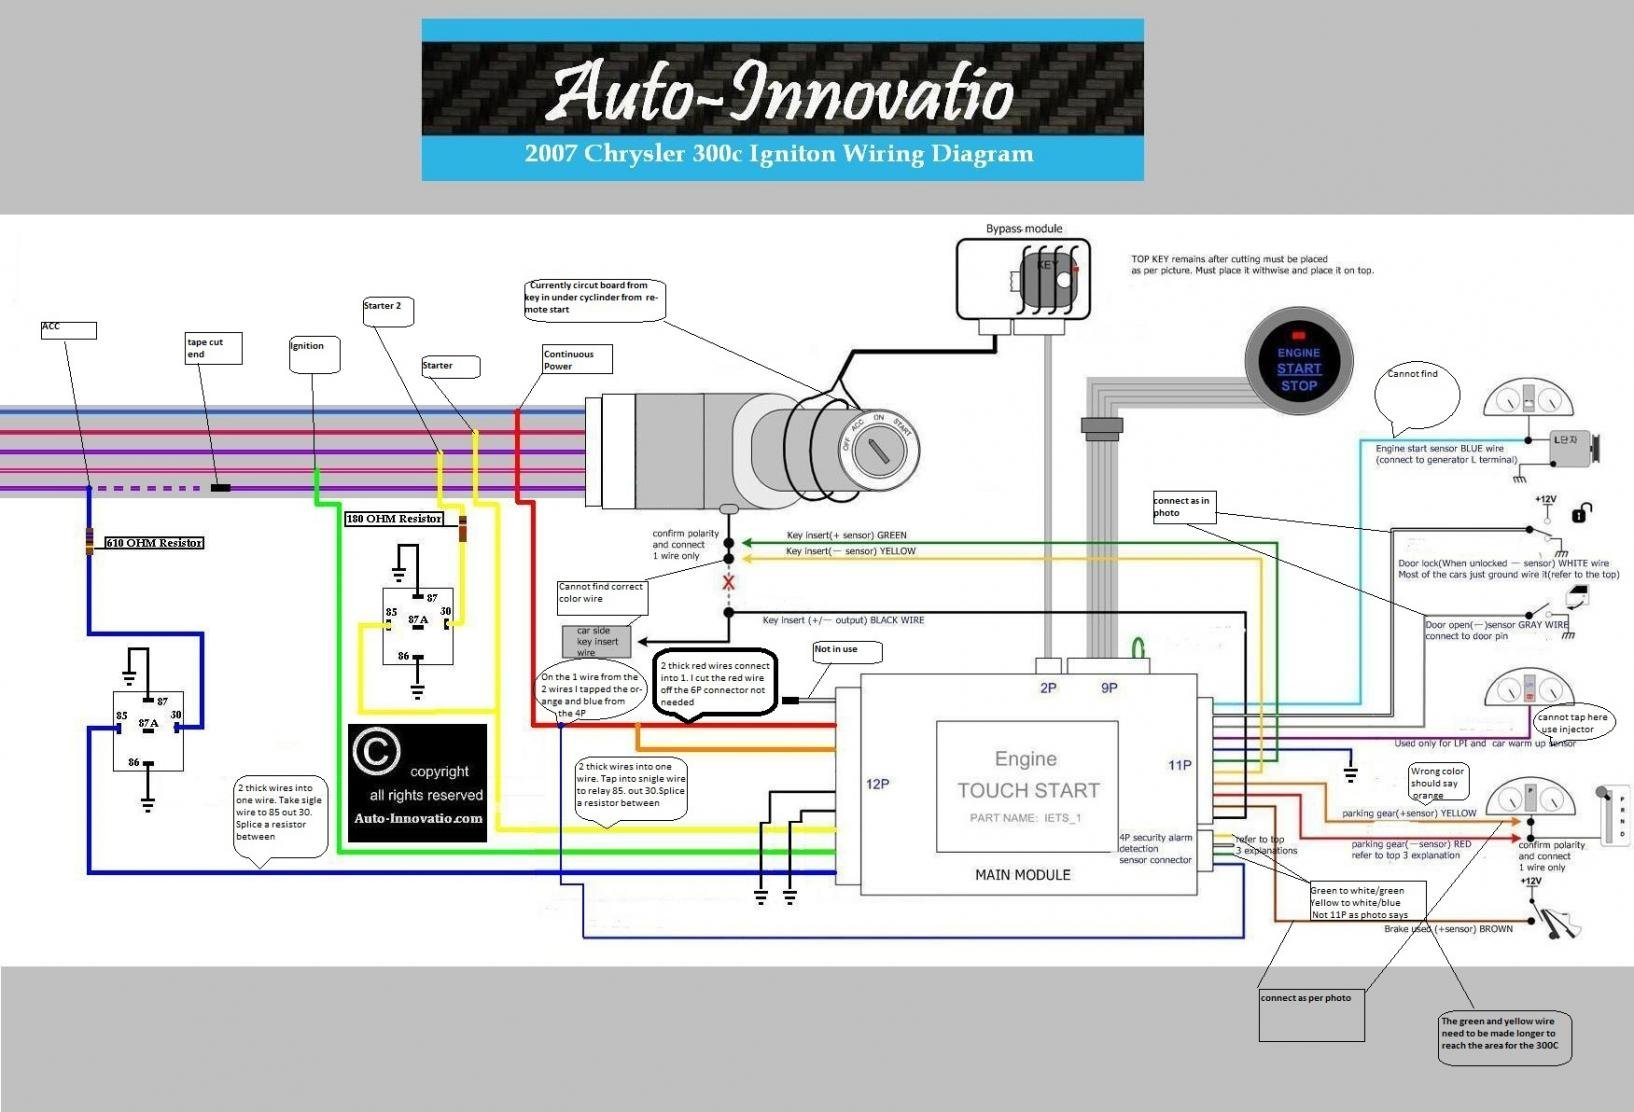 hight resolution of touch button 2007 chrysler 300c vehicle igniton wiring diagram 1 jpg